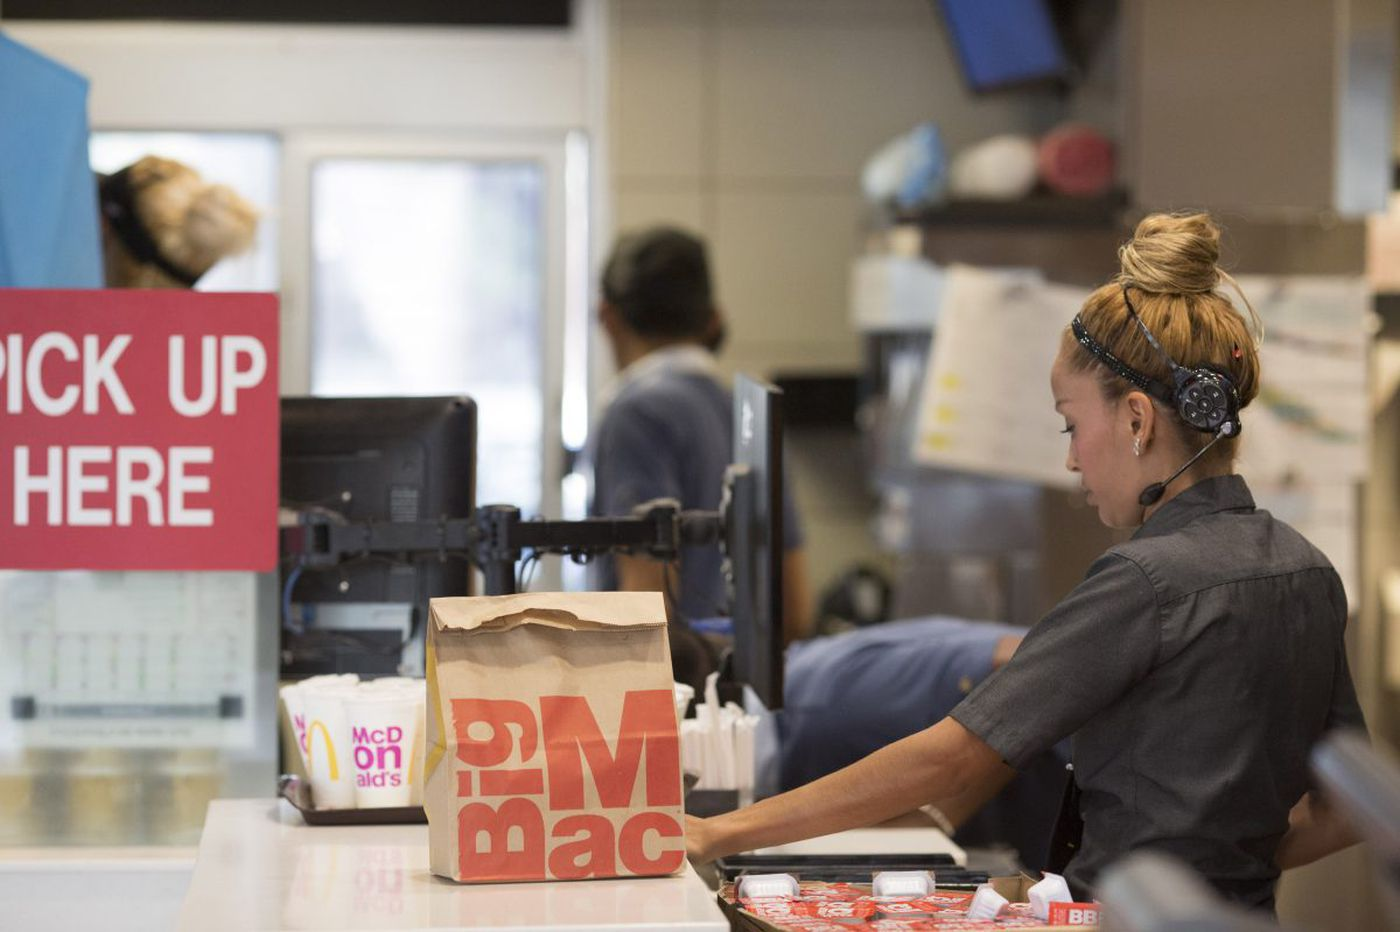 McDonald's tech updates have some workers jumping ship